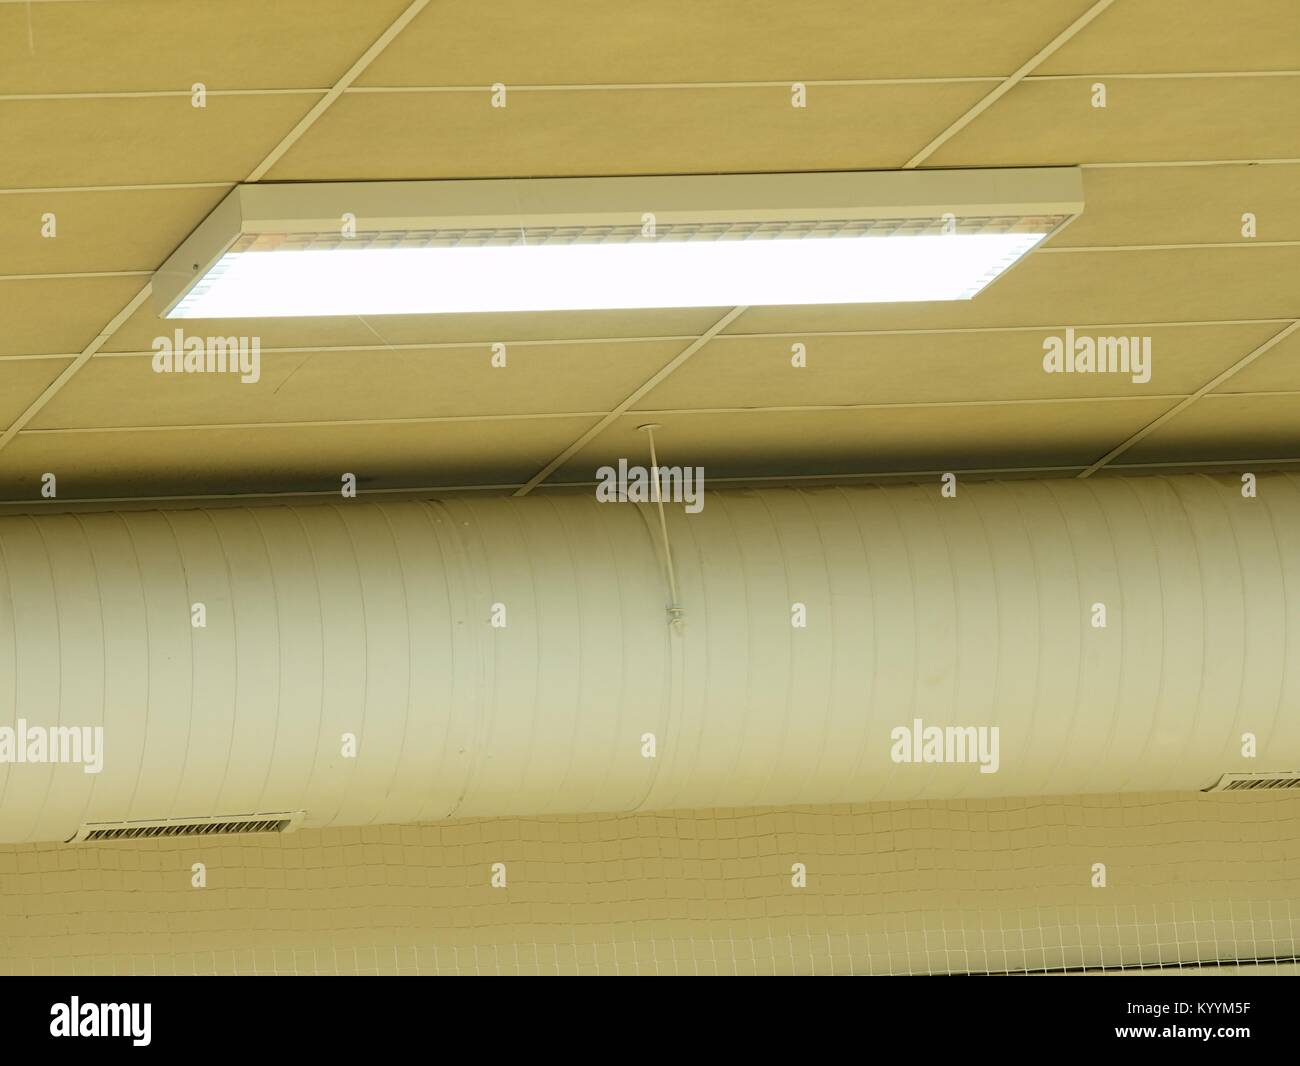 Row of fluorescent lights in an office building. Ceiling and ...